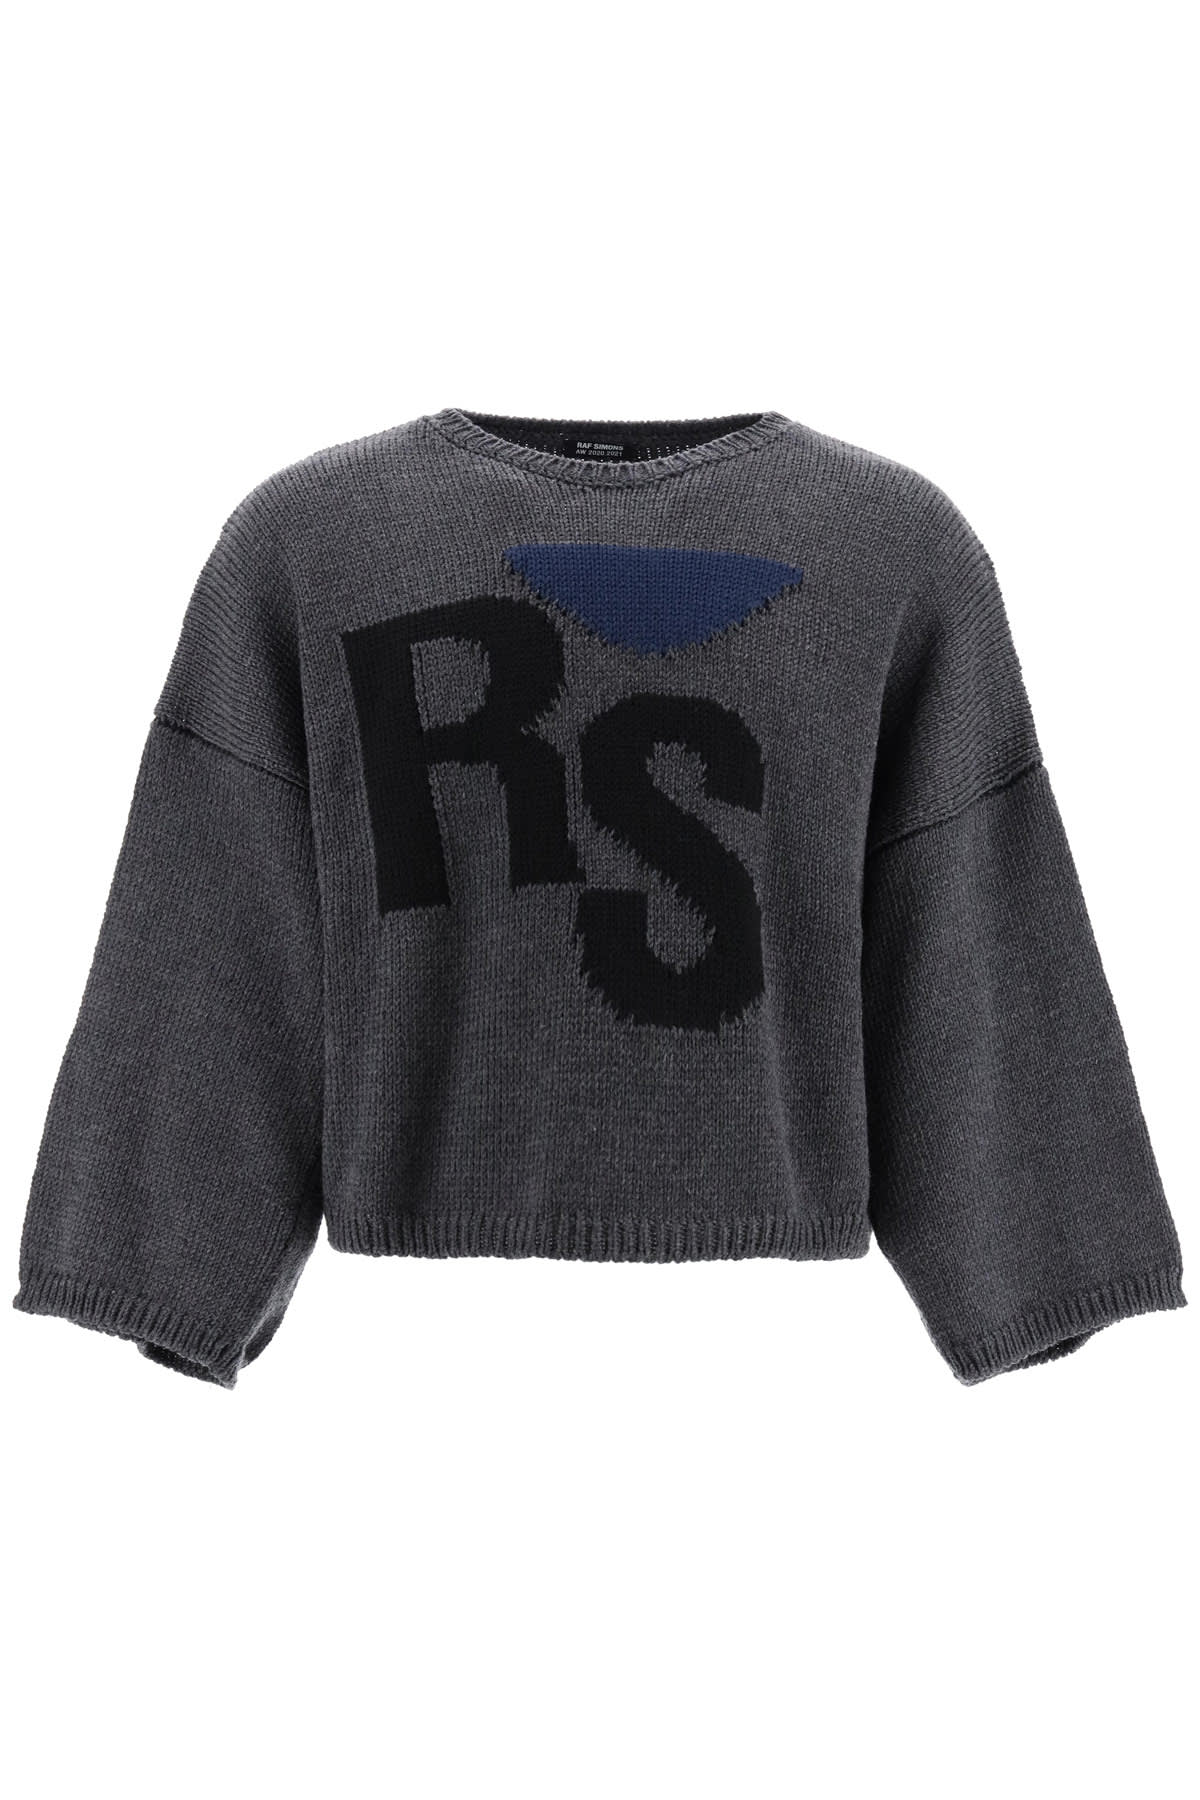 Raf Simons RS INTARSIA SWEATER